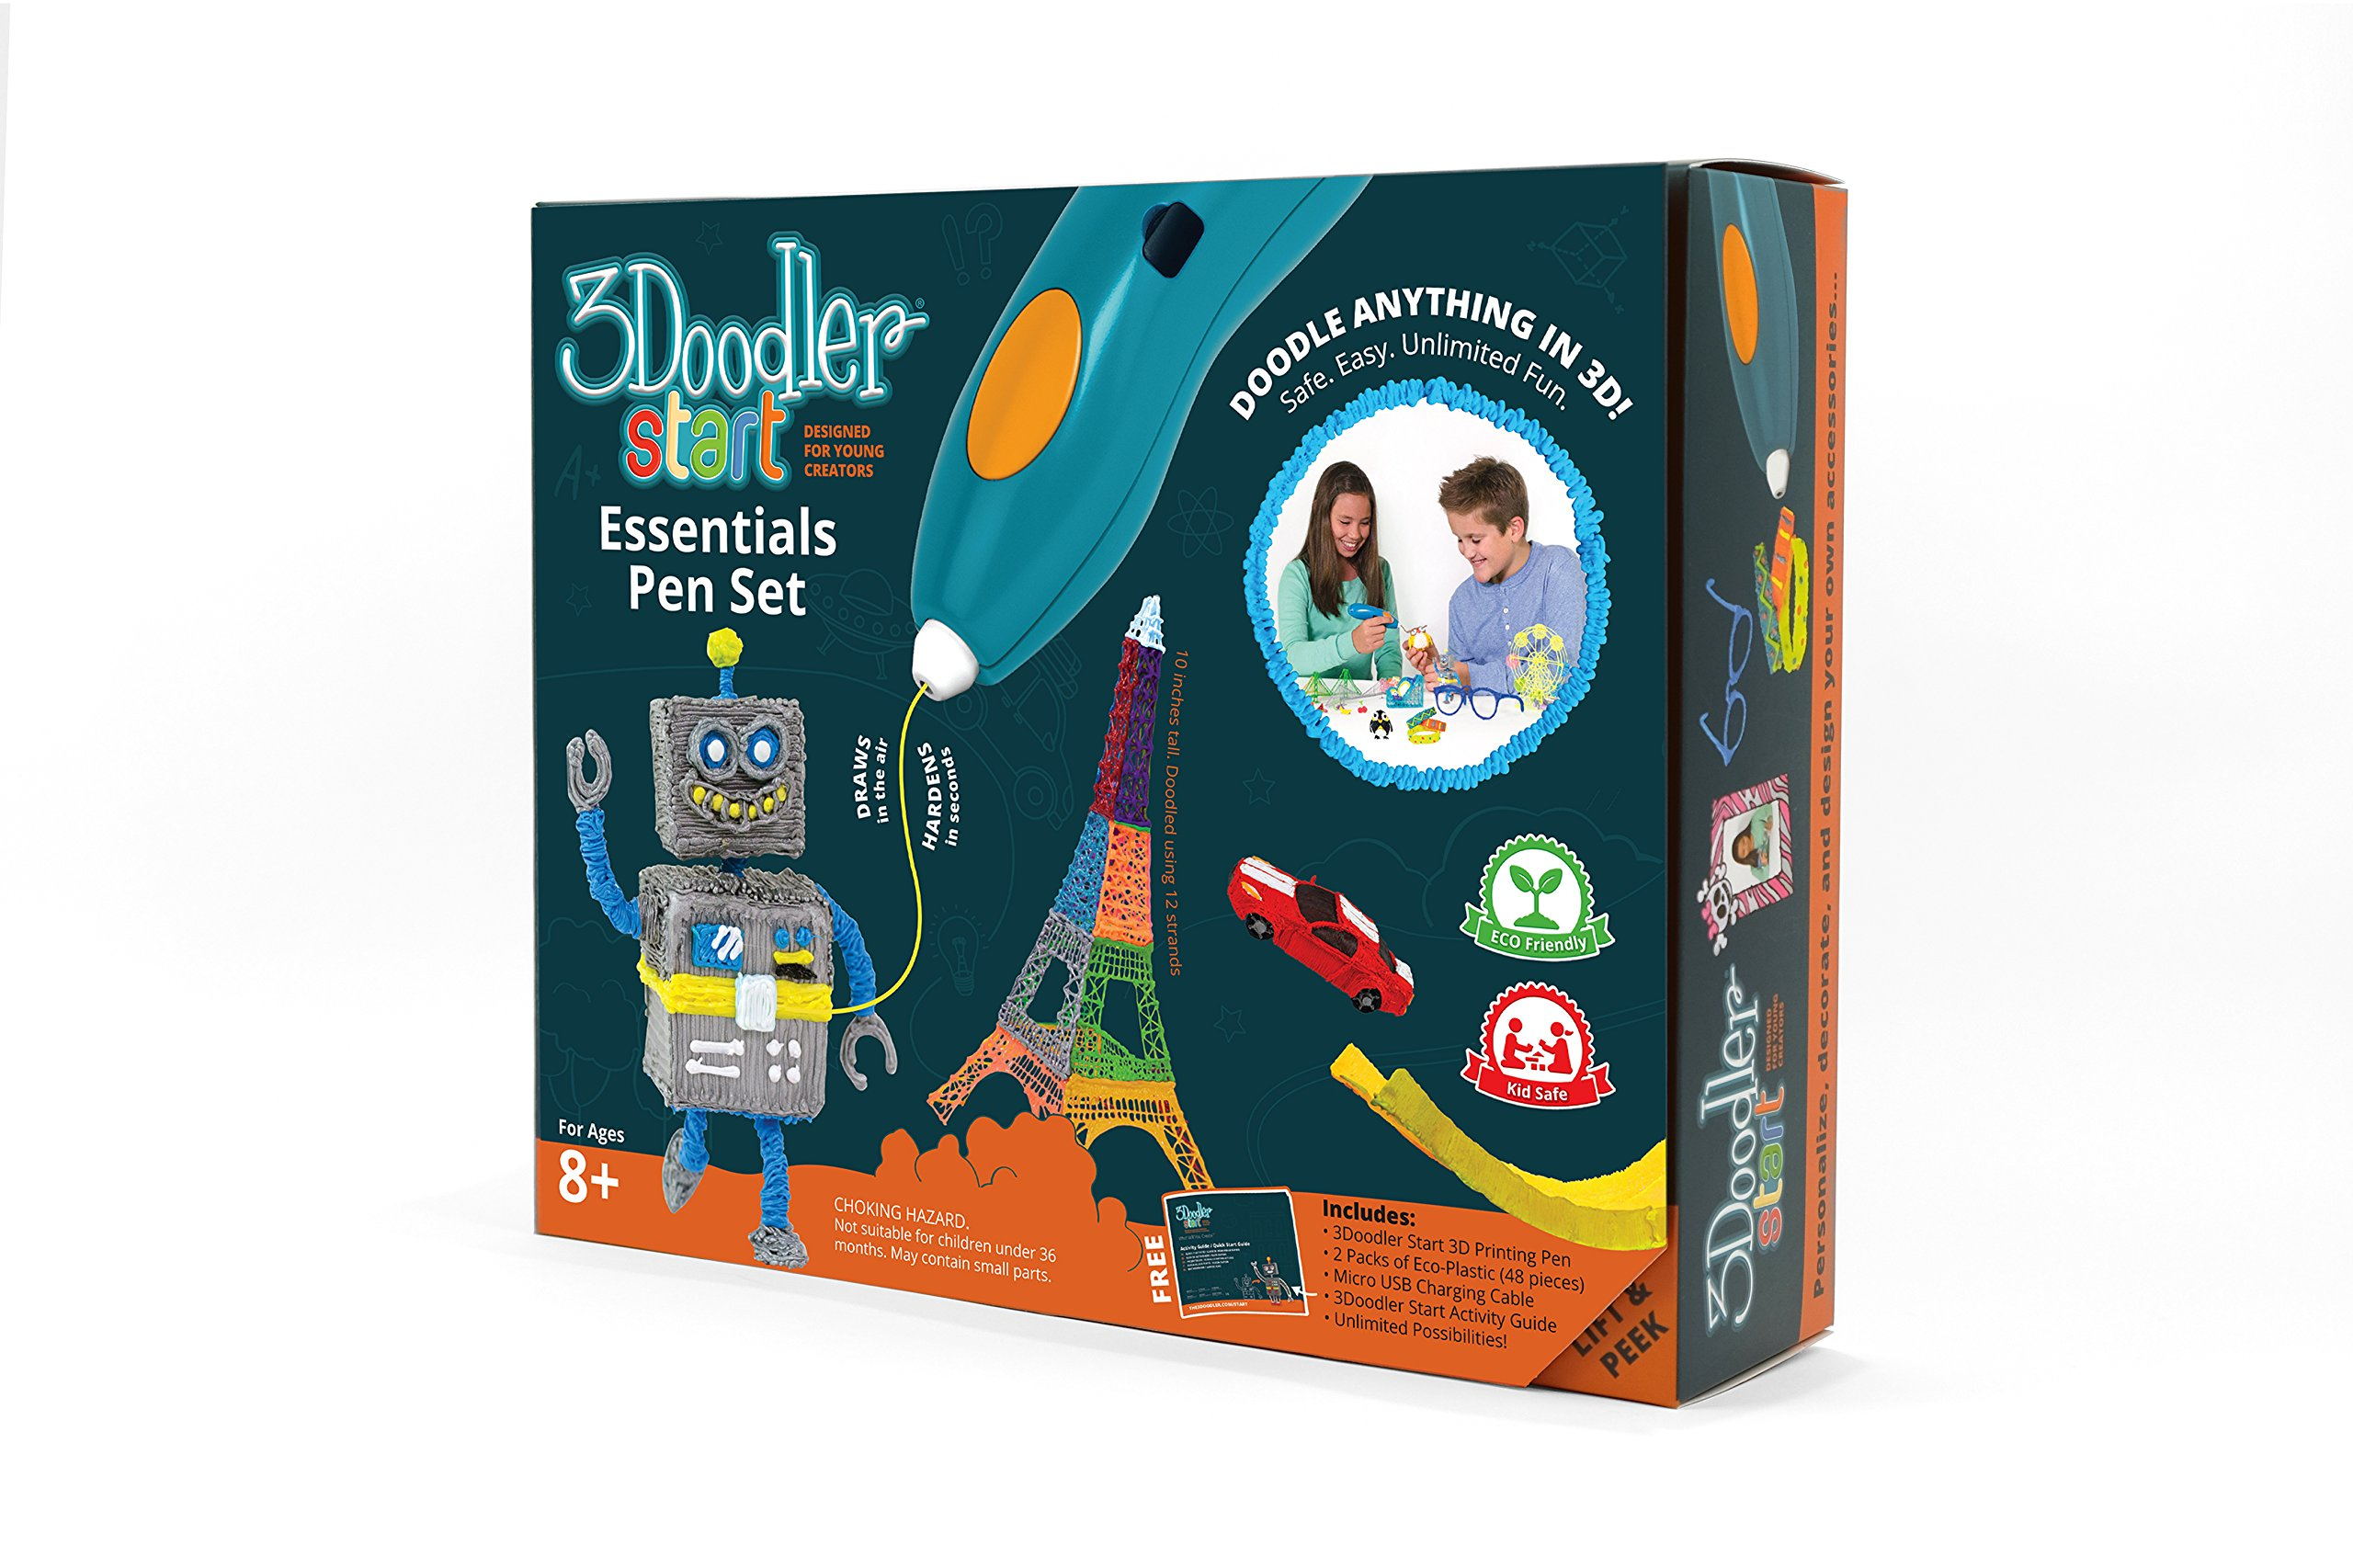 3Doodler Start Essentials 3D Pen Set For Kids with Free Refill Filament - STEM Toy For Boys & Girls, Age 6 & Up - Toy of The Year Award Winner by 3Doodler (Image #3)